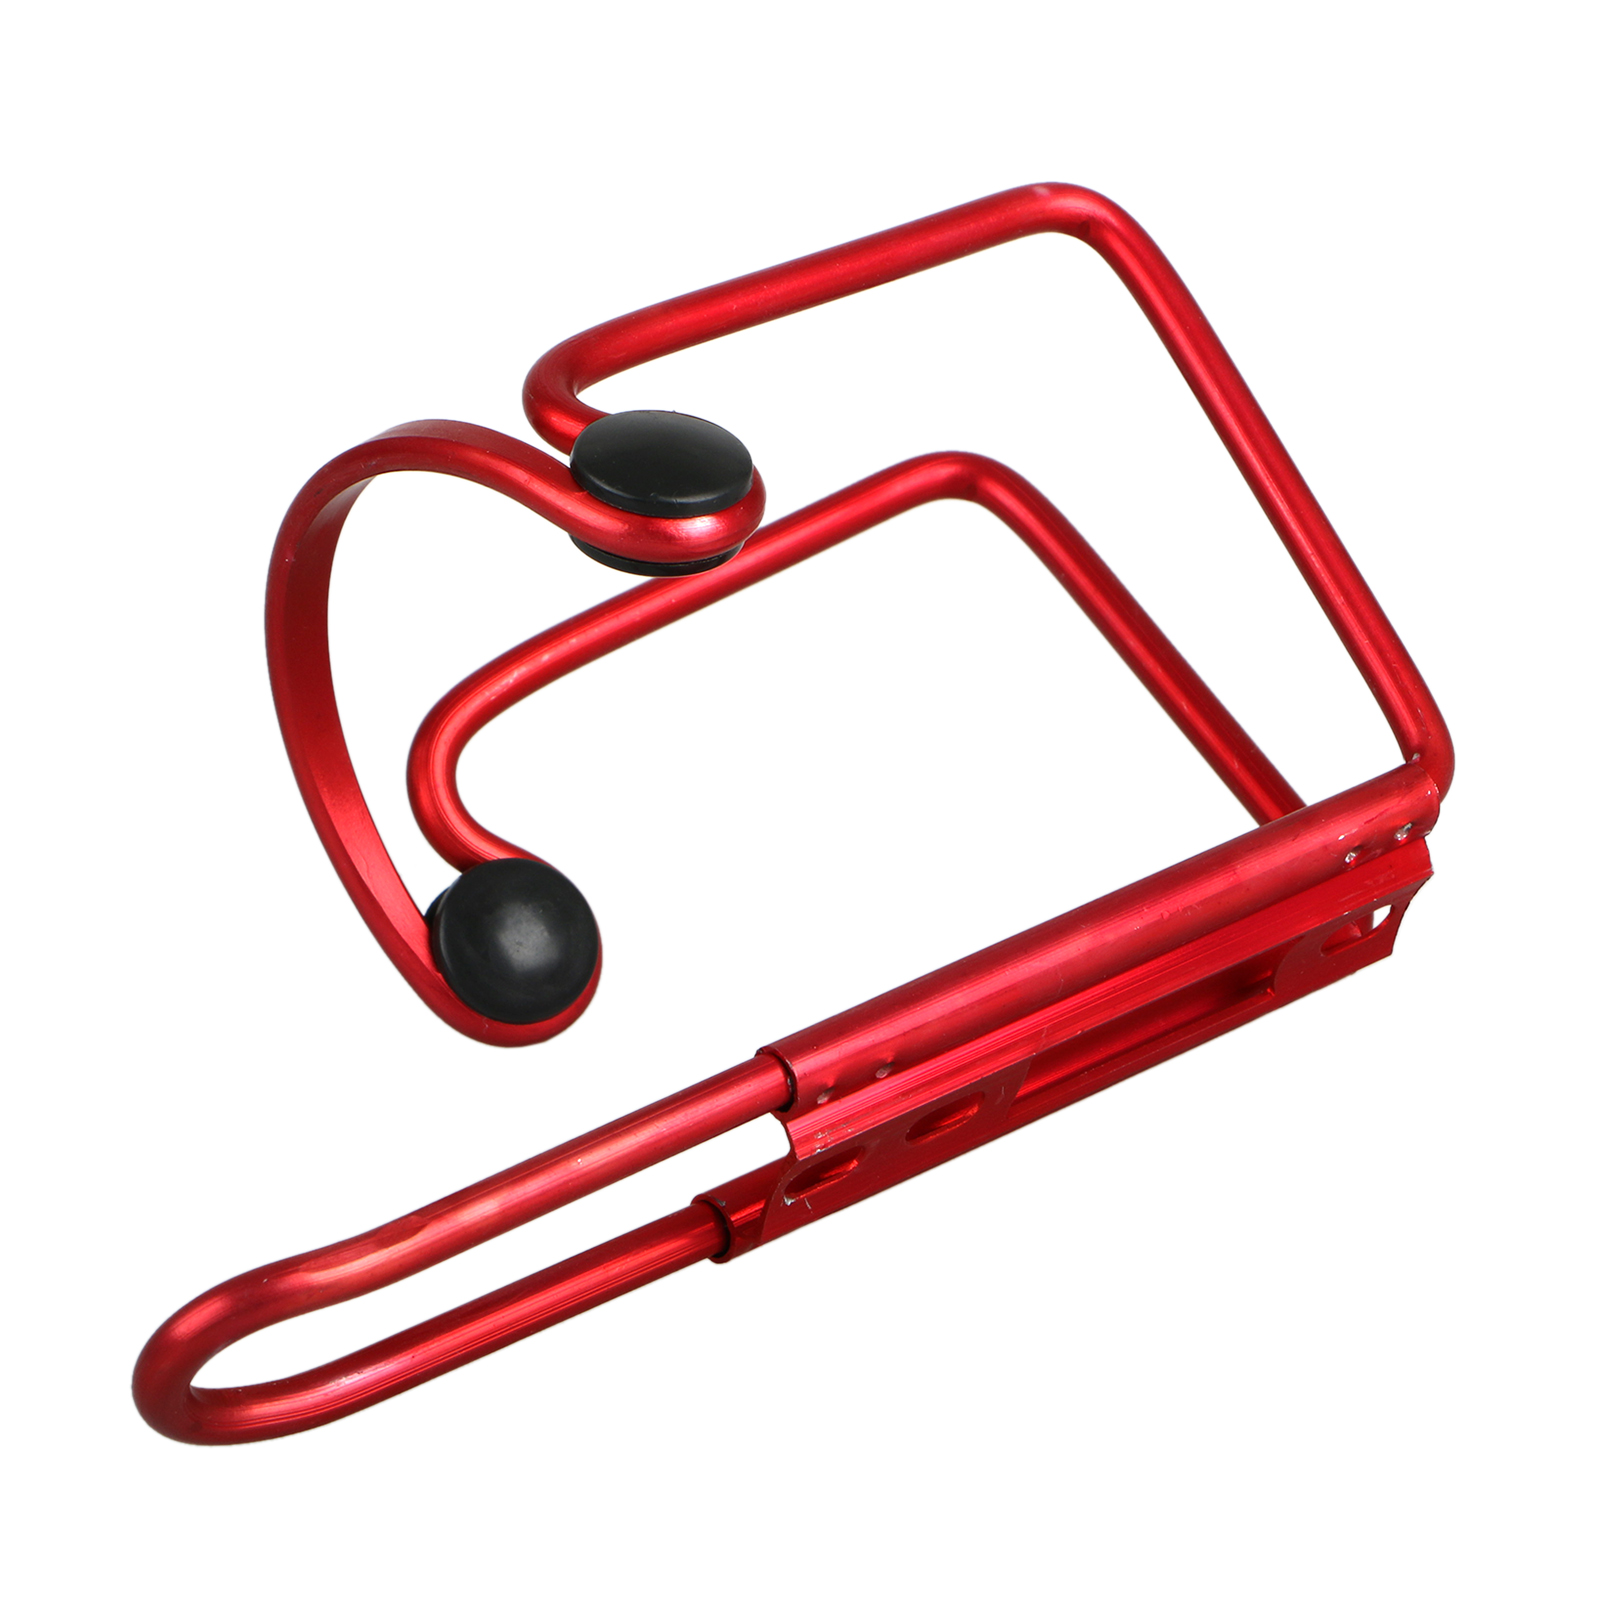 TSV Aluminum Alloy Bike Bicycle Cycling Drink Water Bottle Rack Holder Cages Bracket